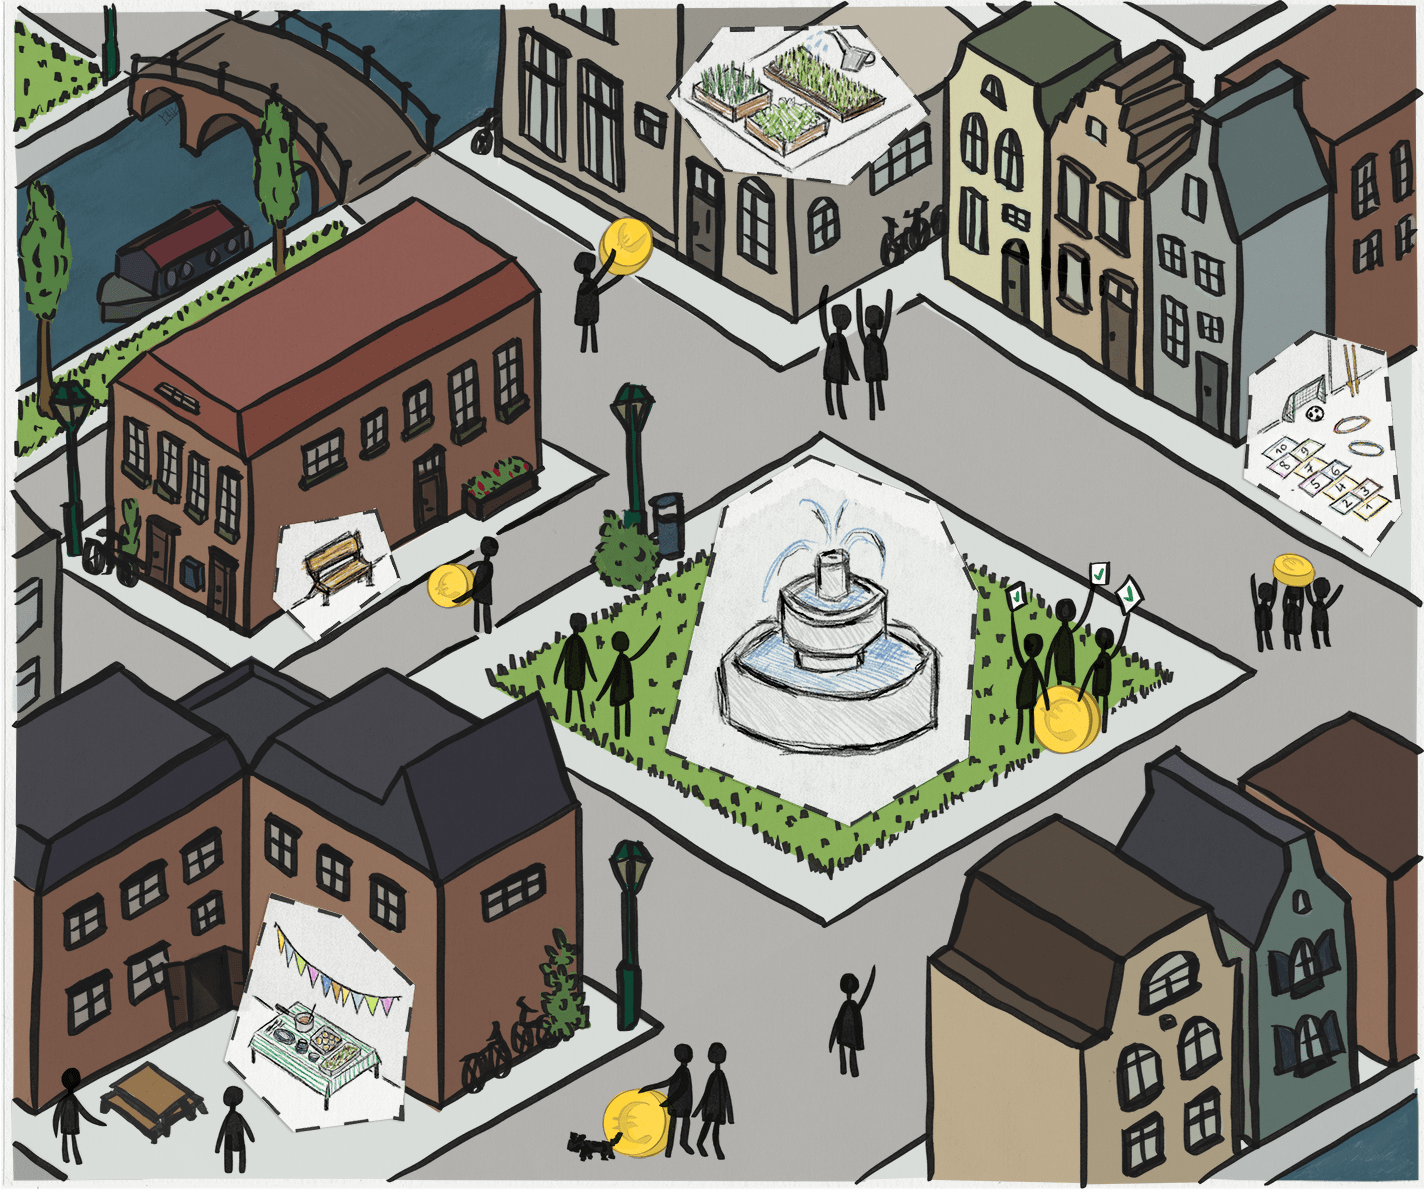 When residents design their city